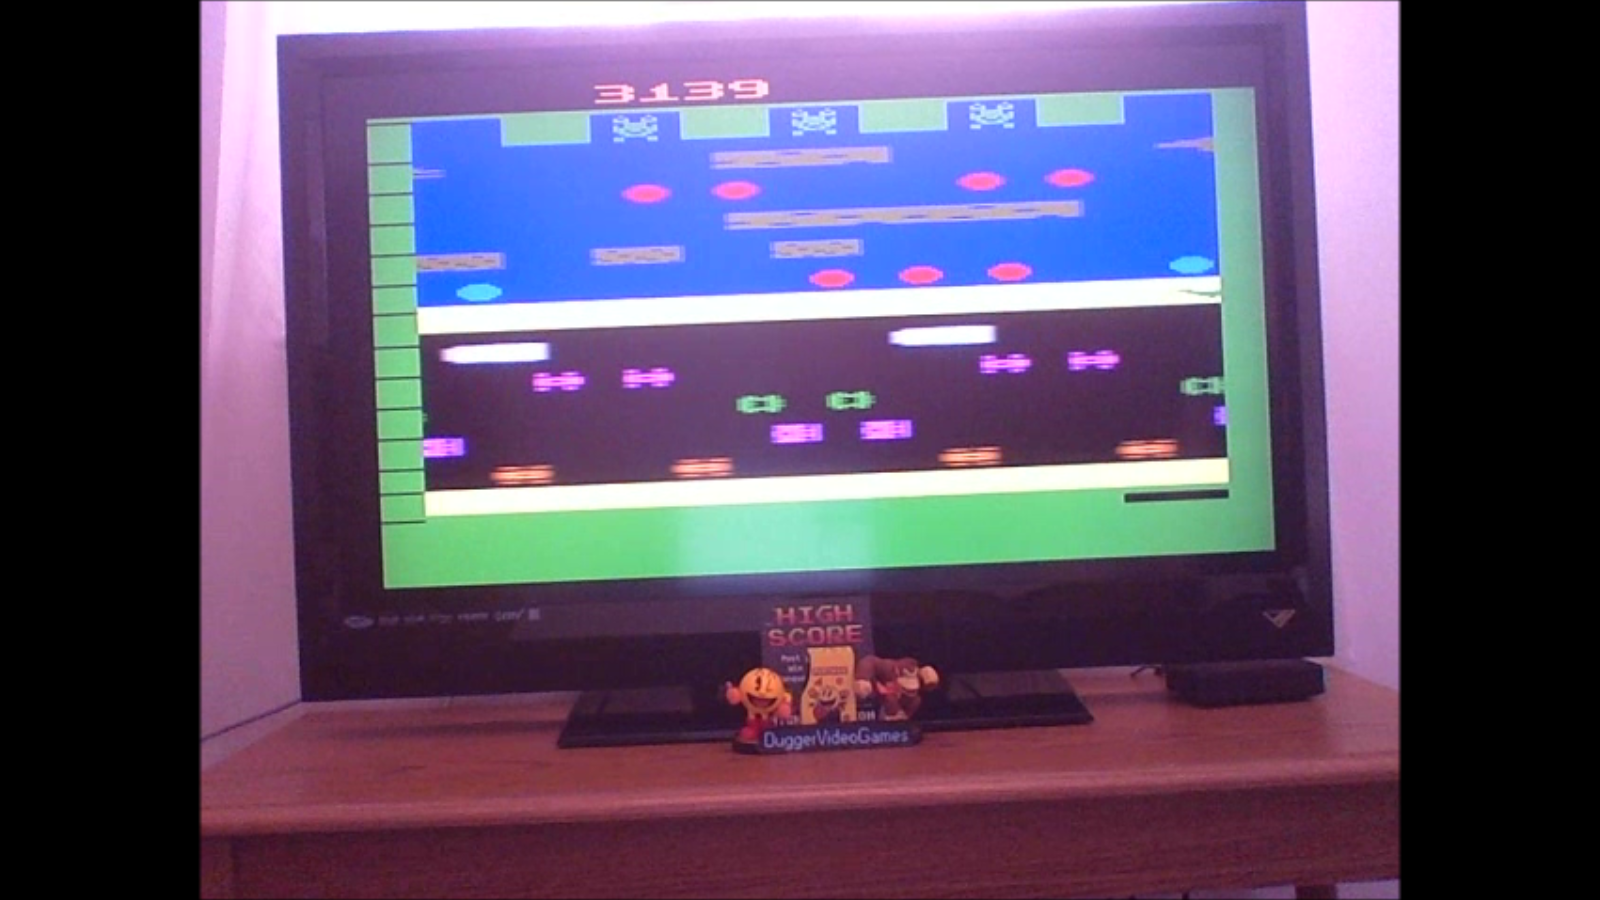 DuggerVideoGames: Frogger (Atari 2600 Emulated Novice/B Mode) 3,139 points on 2017-02-08 13:41:57